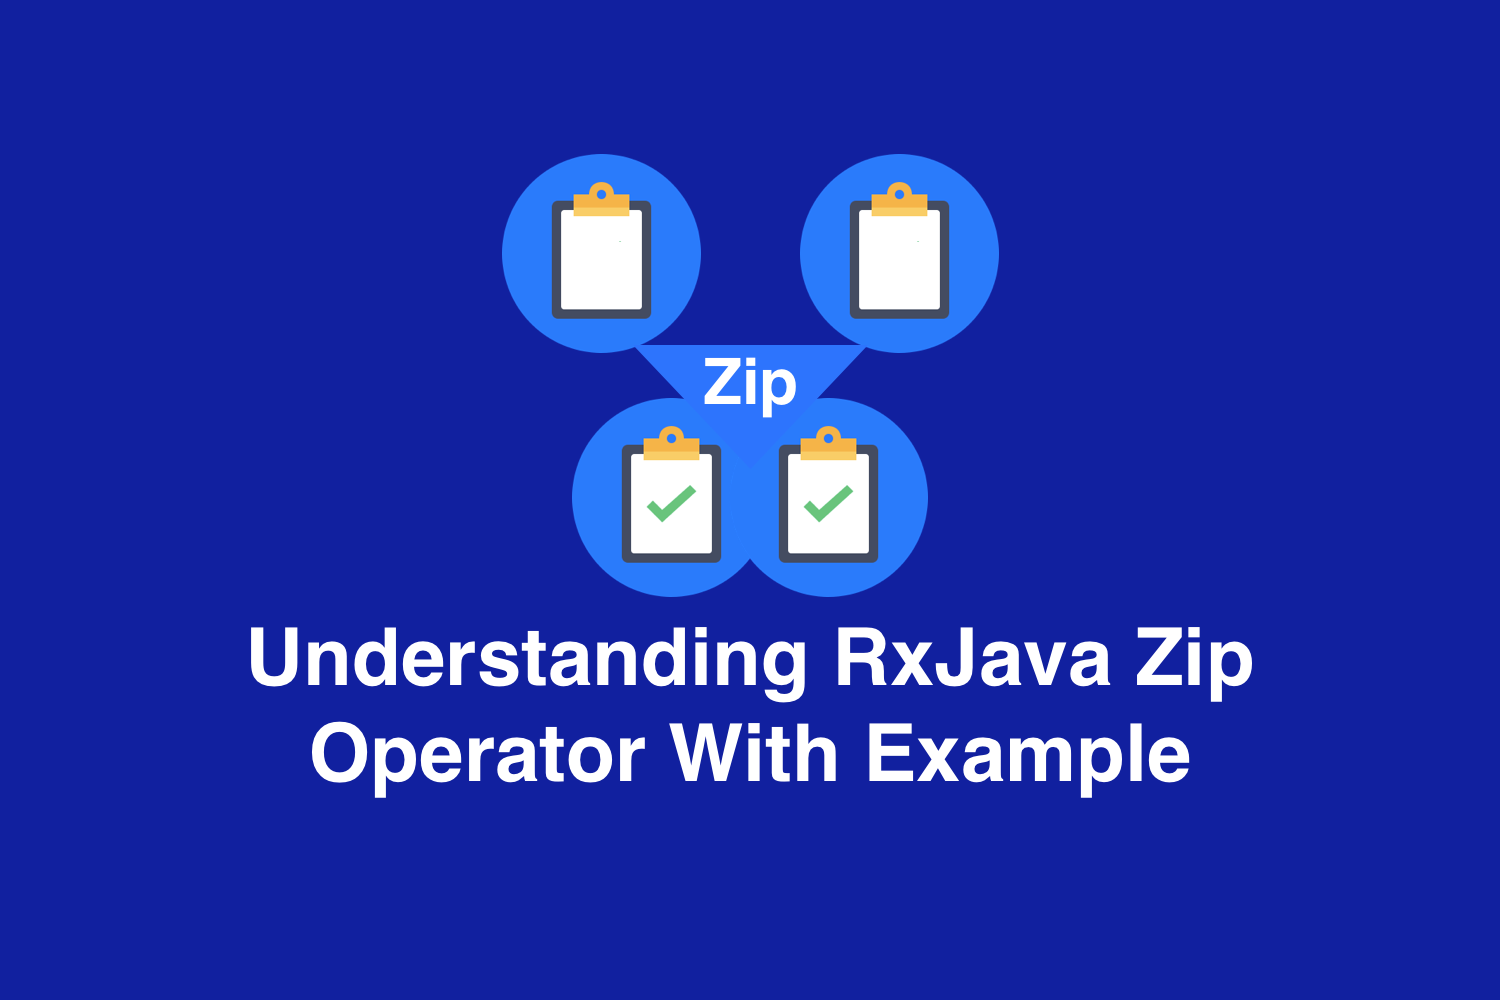 Understanding RxJava Zip Operator With Example